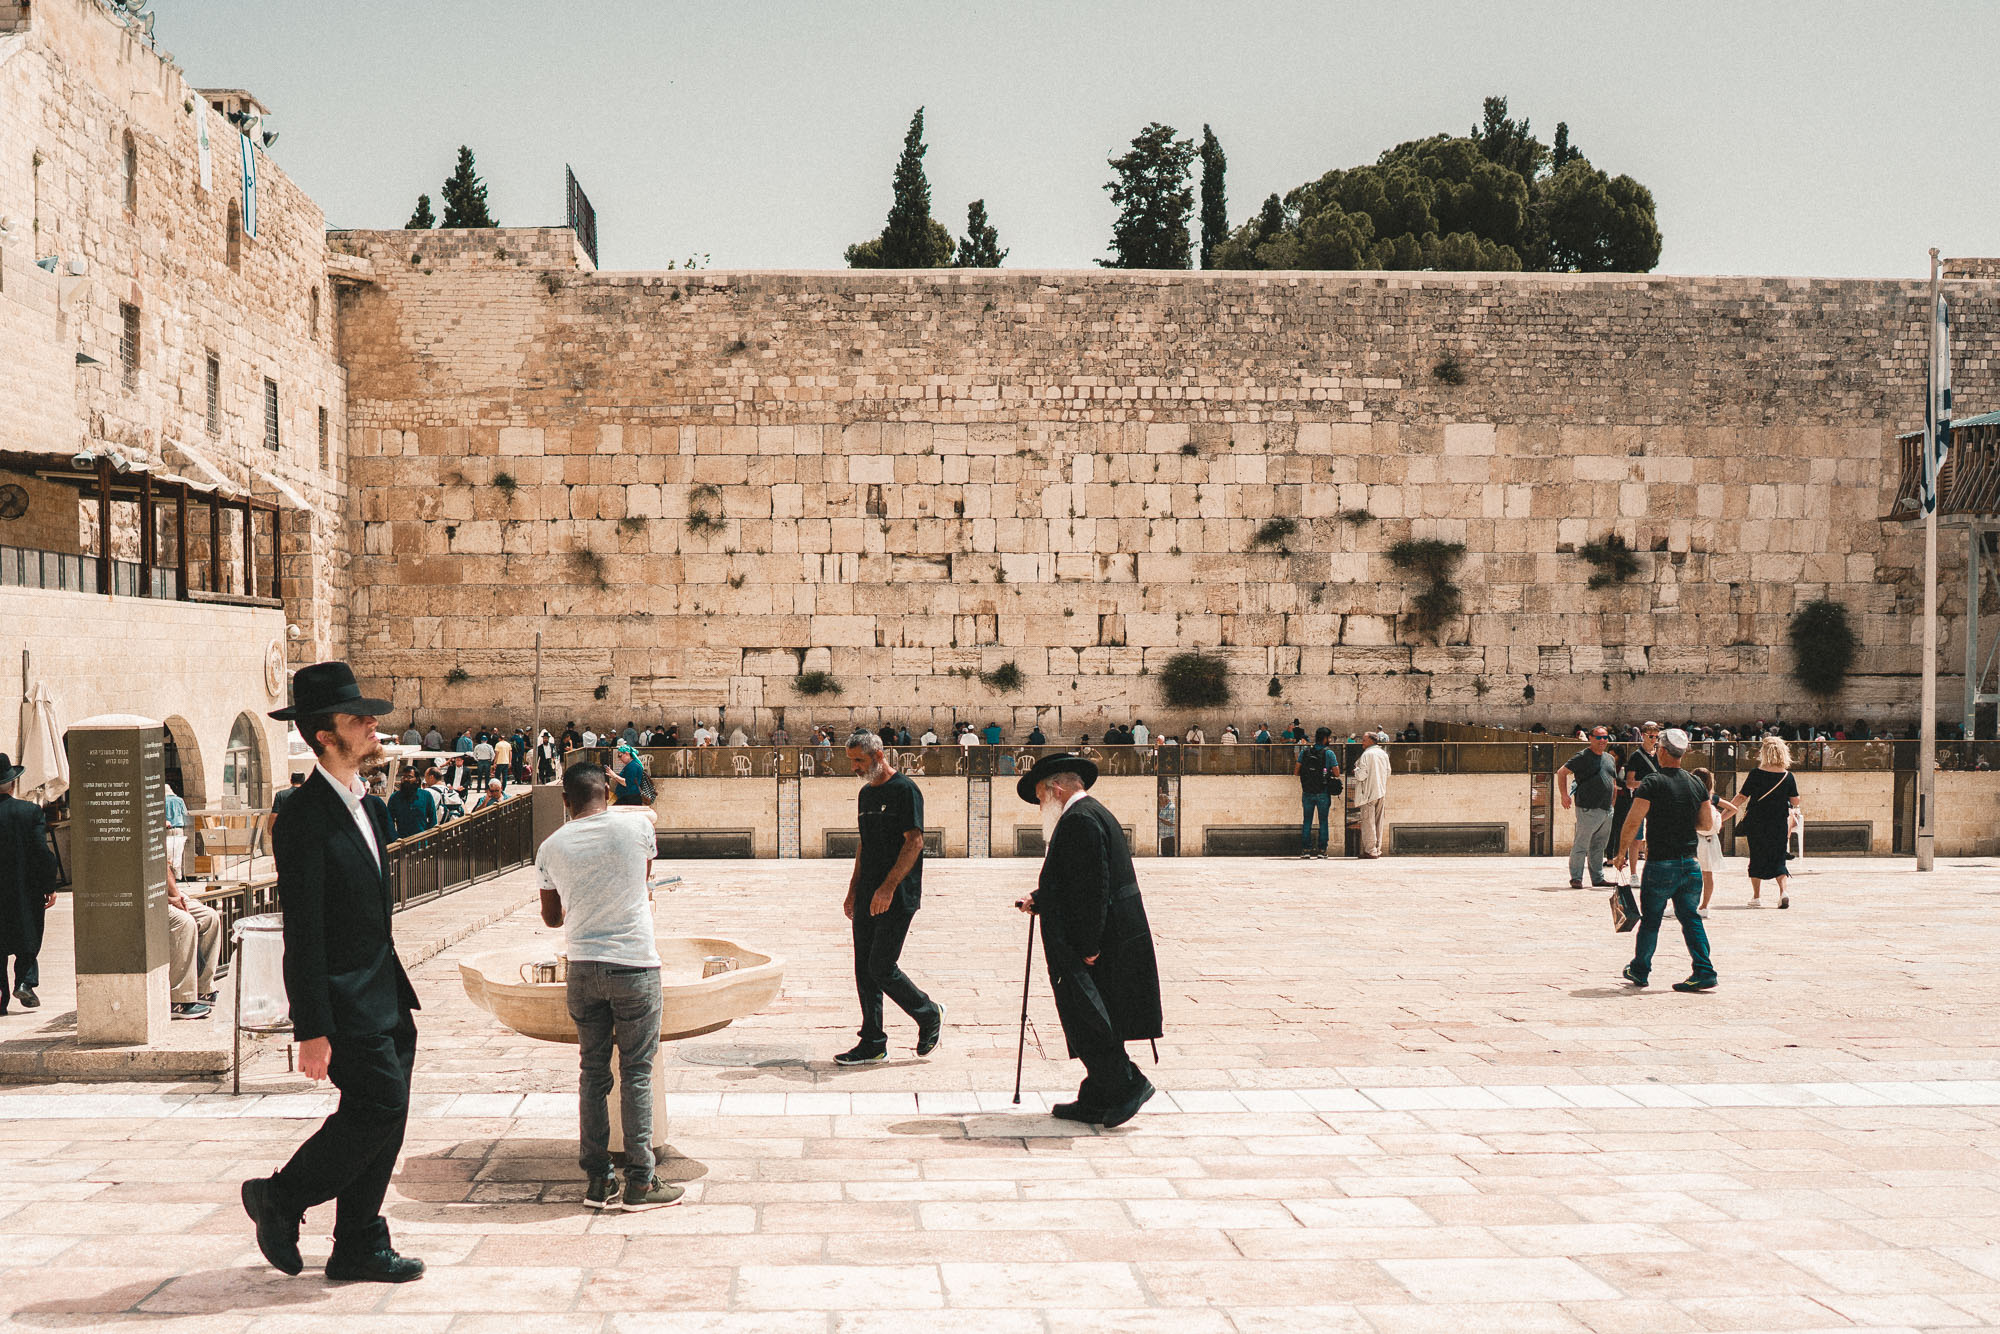 The western wall or wailing wall in Jerusalem's old town in Israel